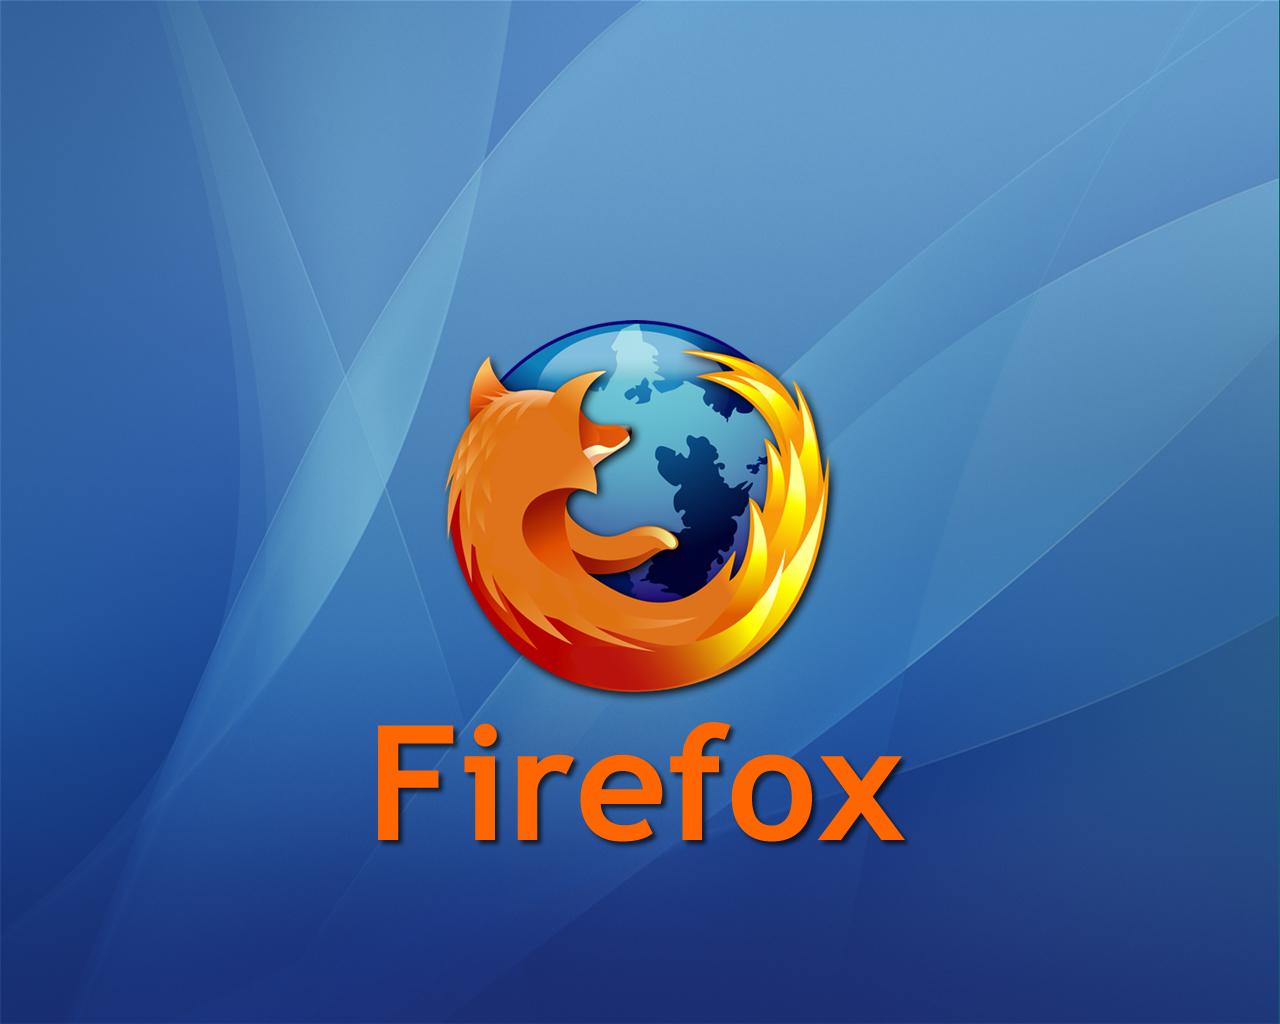 Firefox - Firefox Wallpaper (8967199) - Fanpop